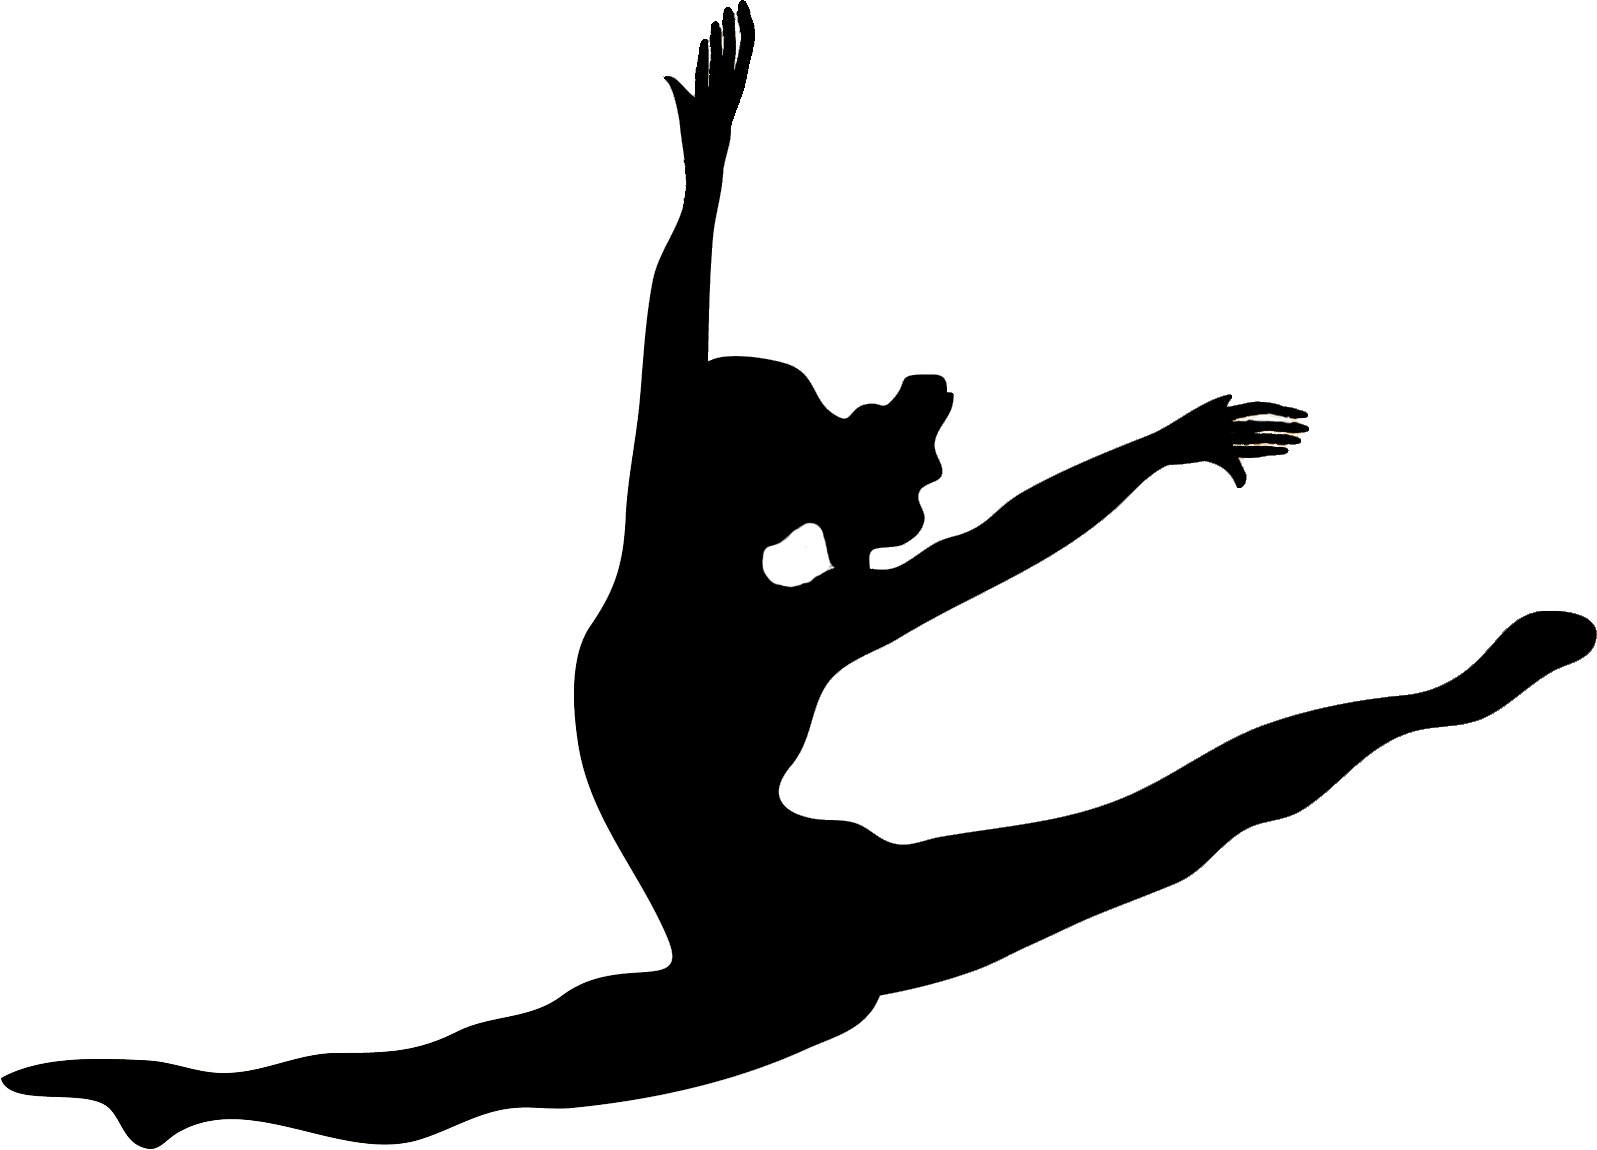 Toe Touch Clipart.